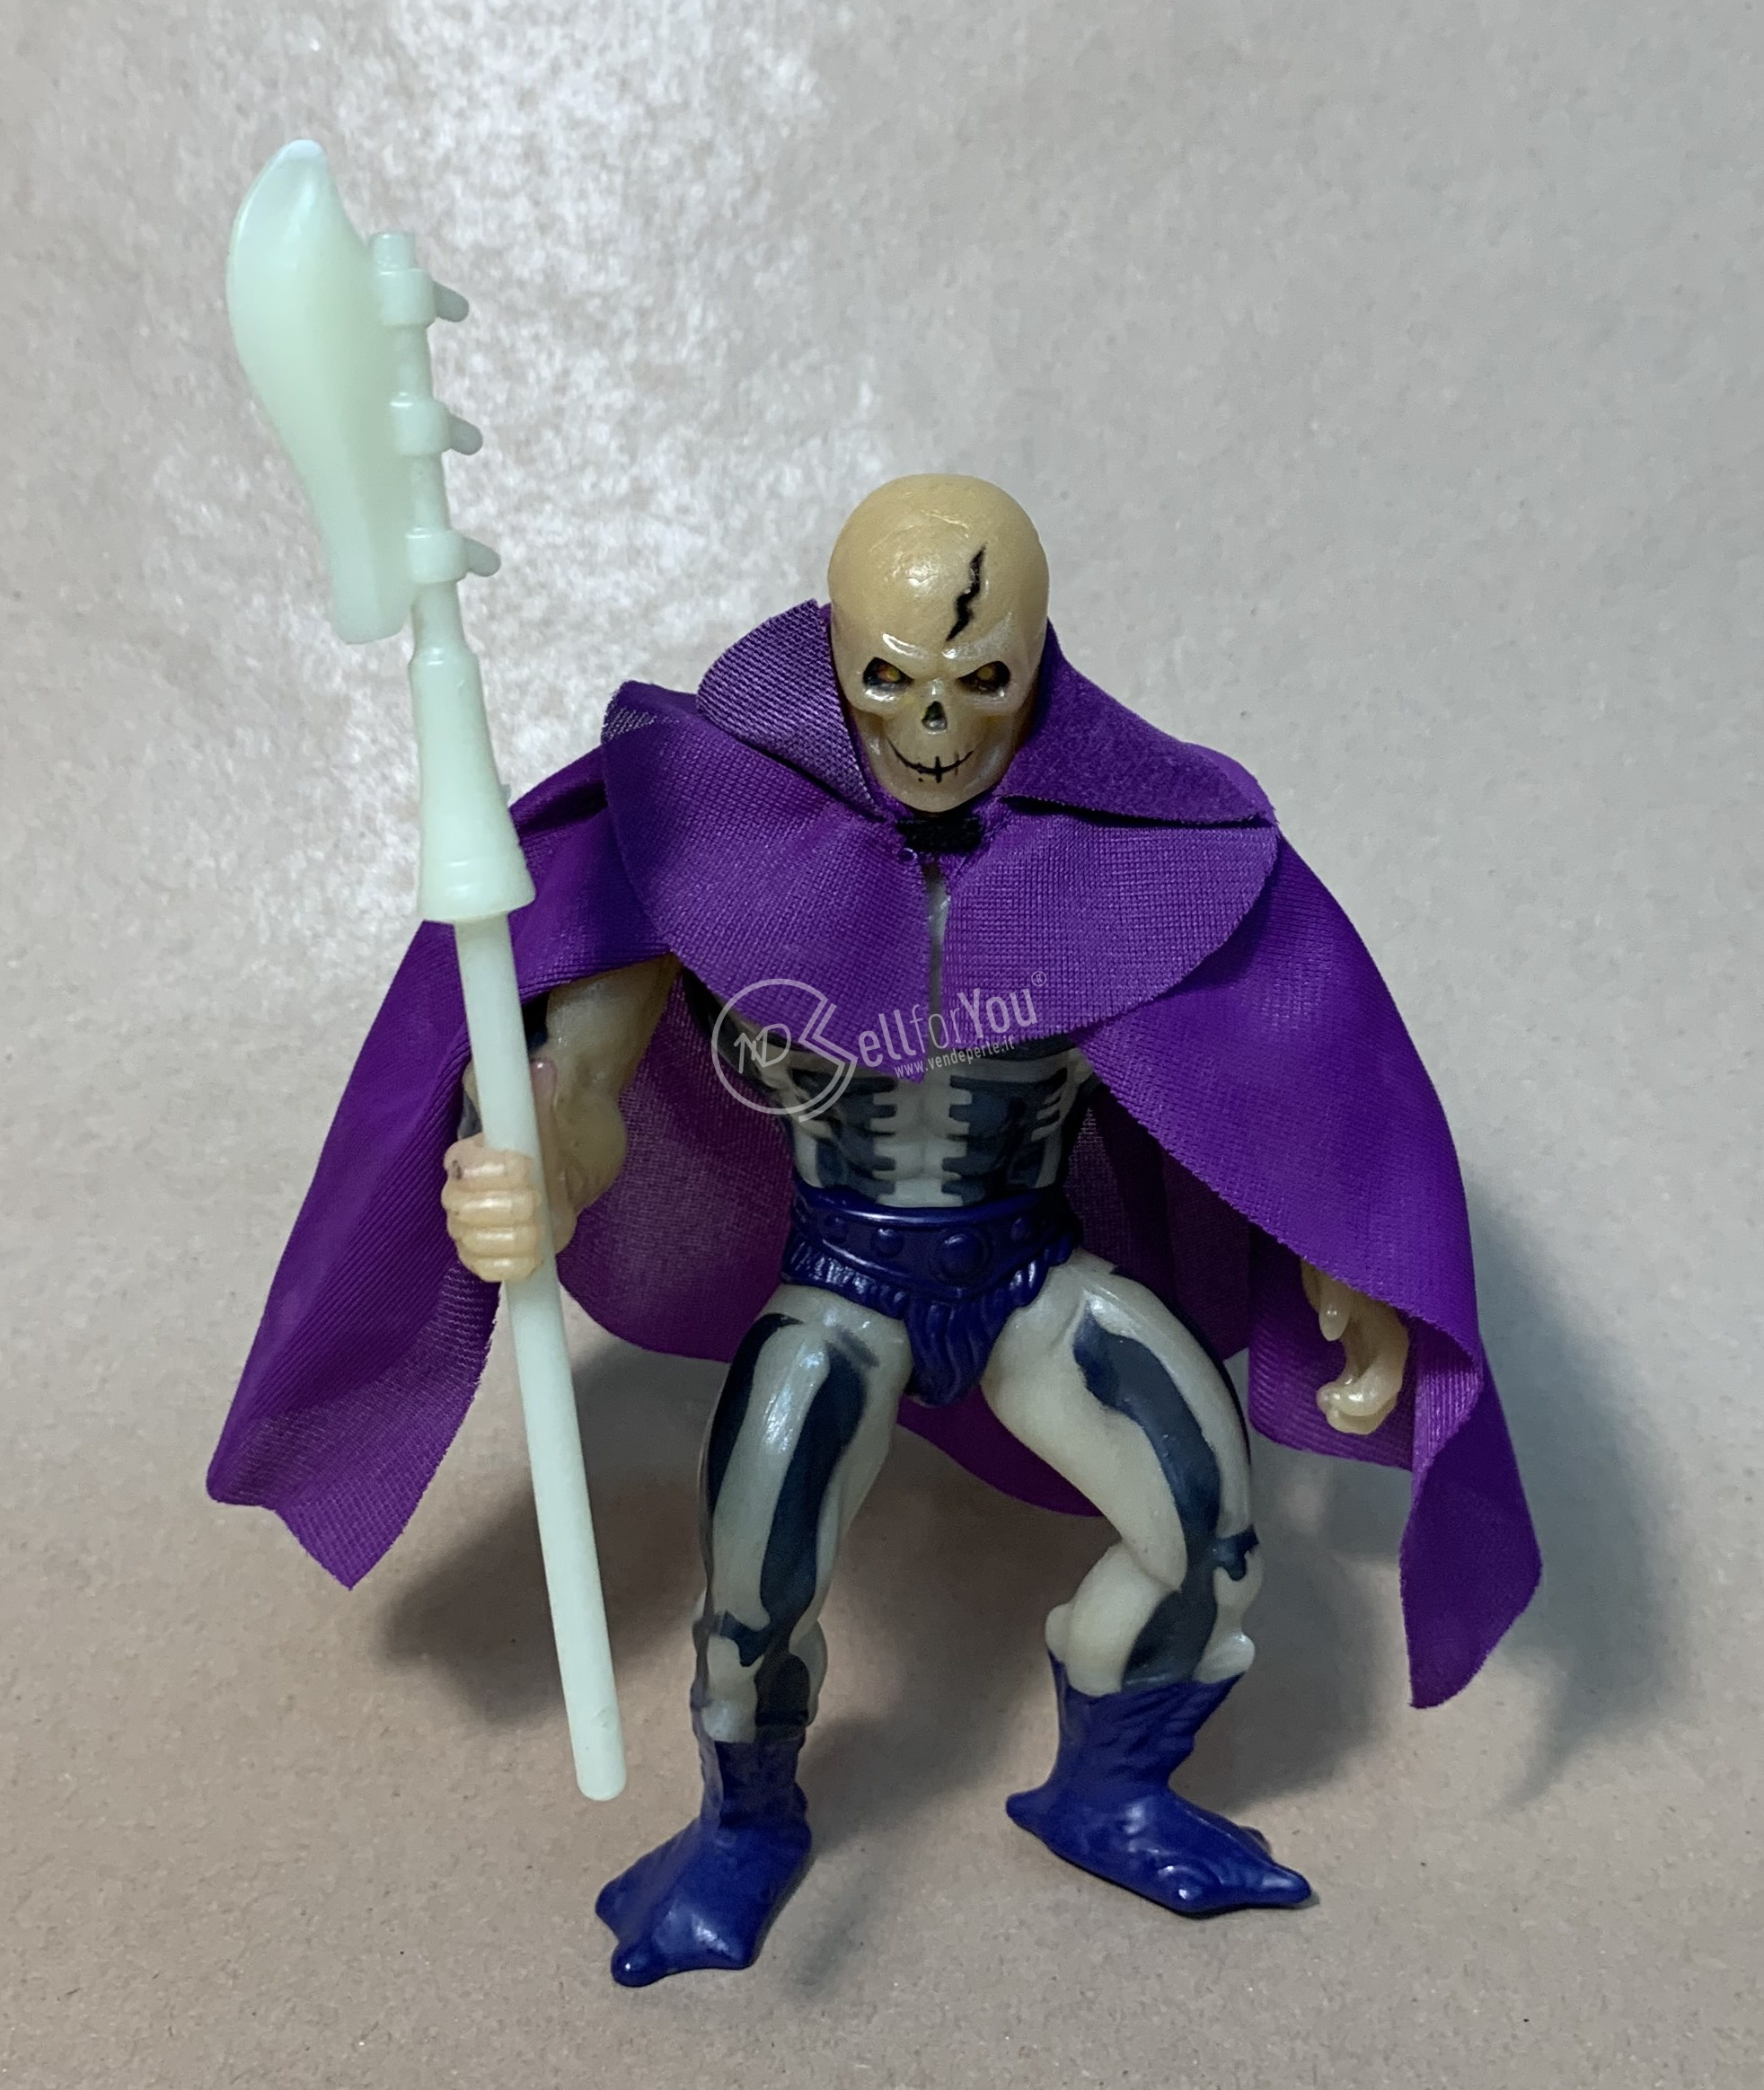 Masters of the Universe Scare Glow anni '80 Mattel 7 sellforyou